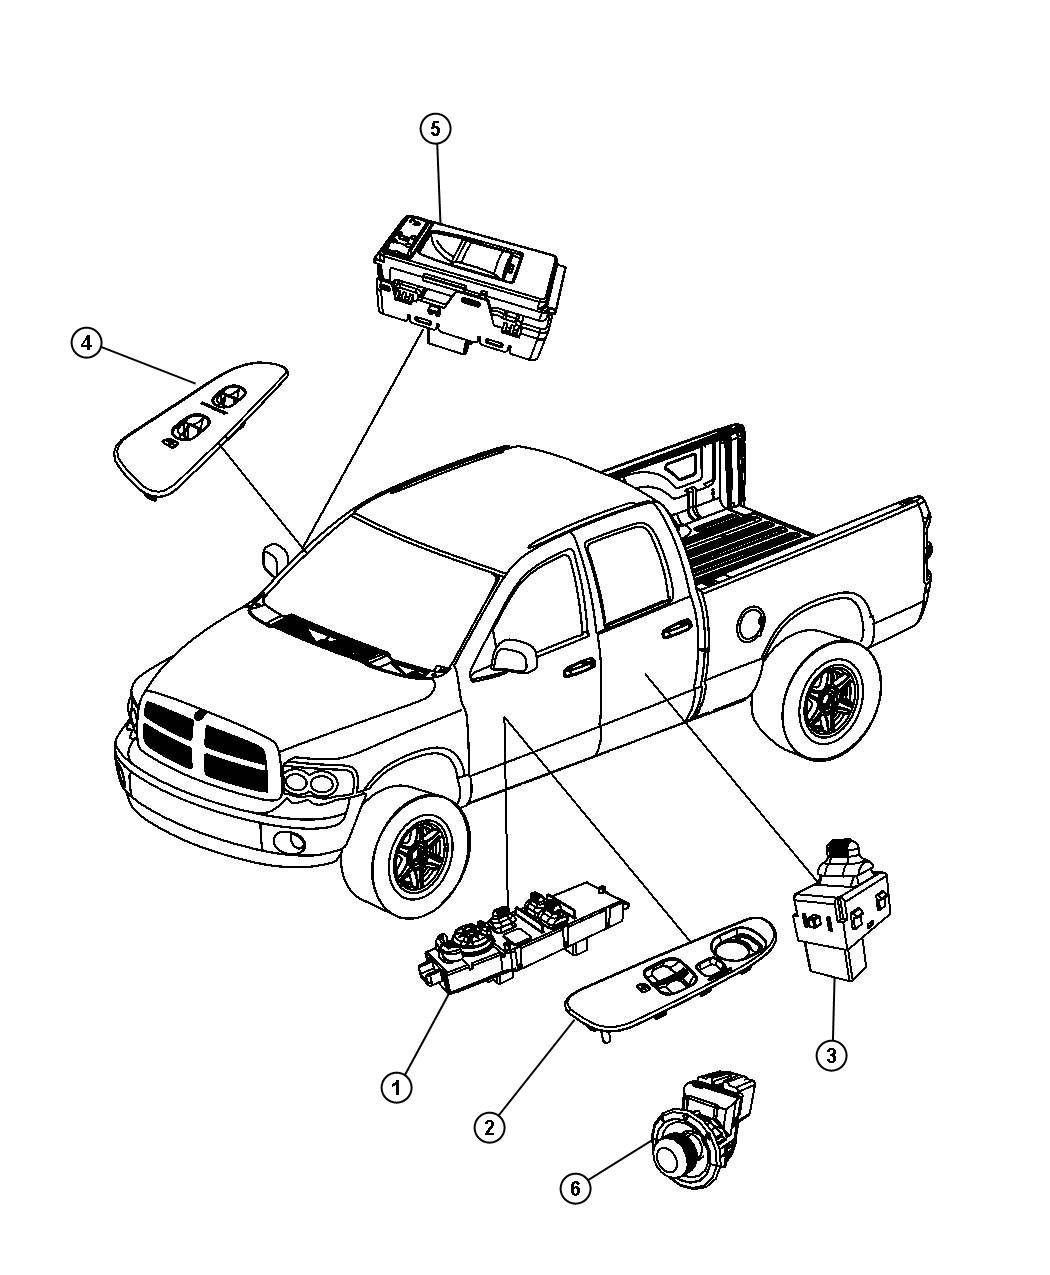 Dodge Dakota Door Diagram